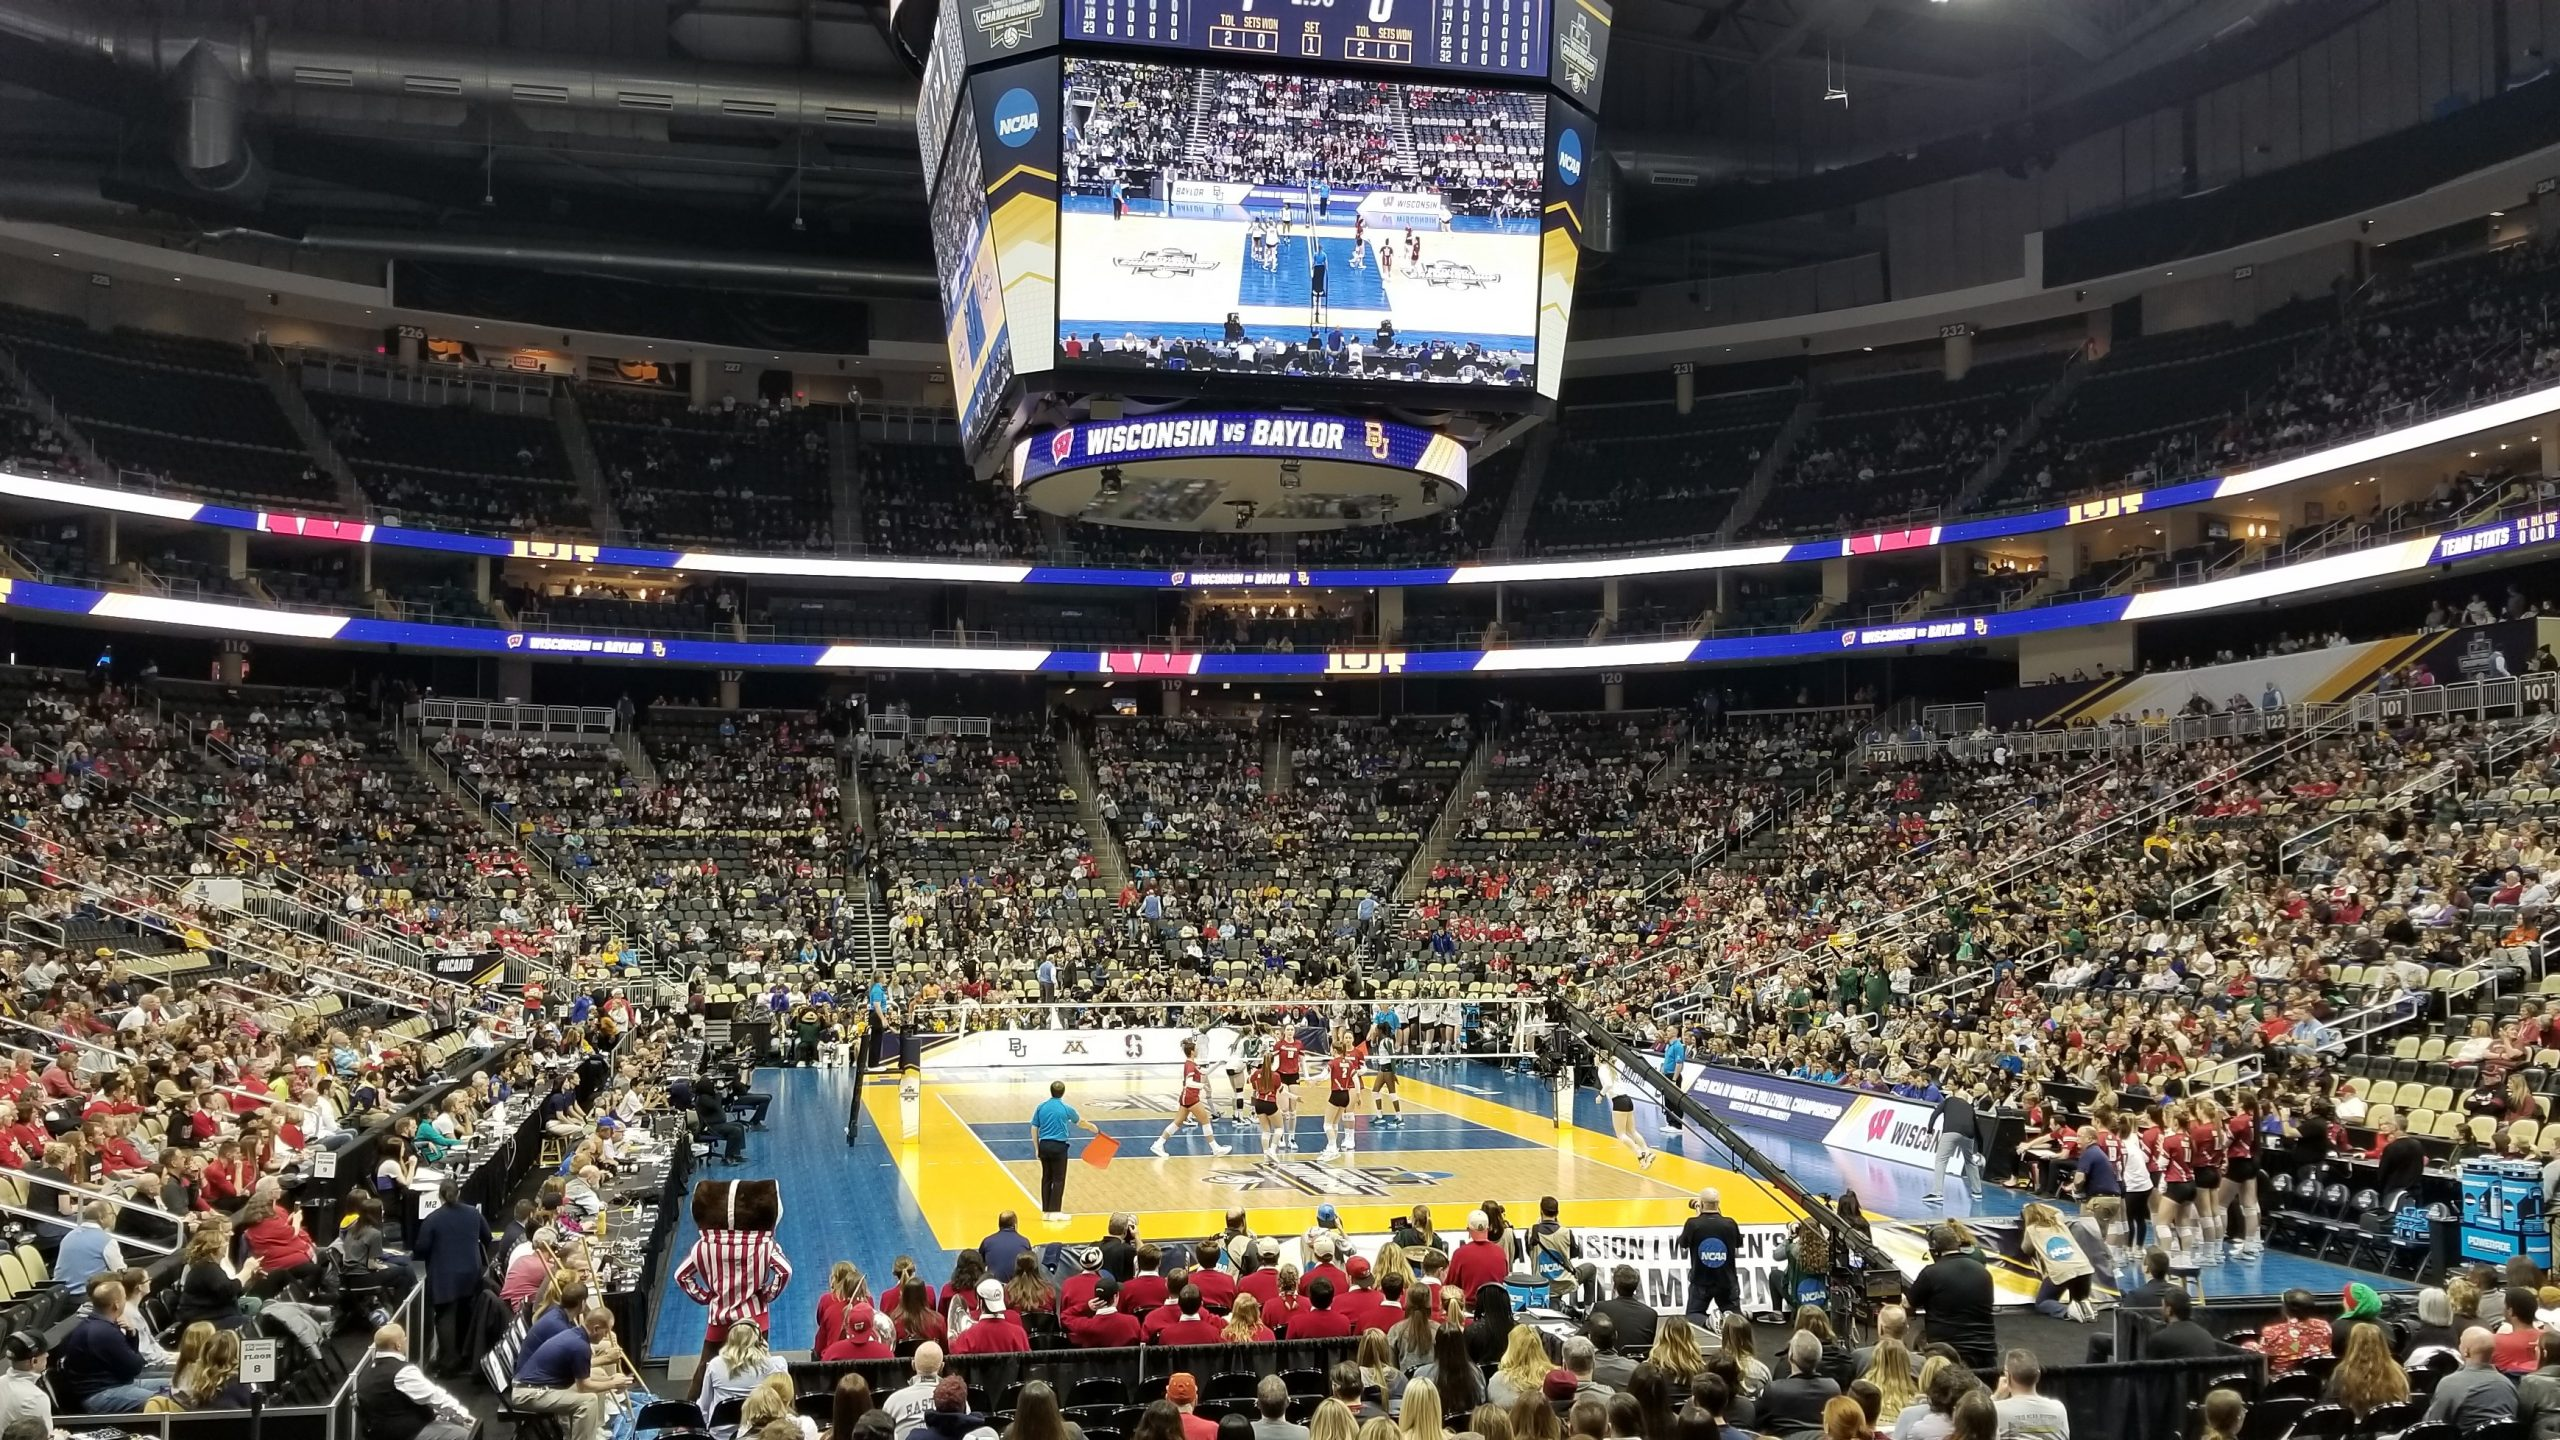 NCAA Semifinals in Pittsburgh